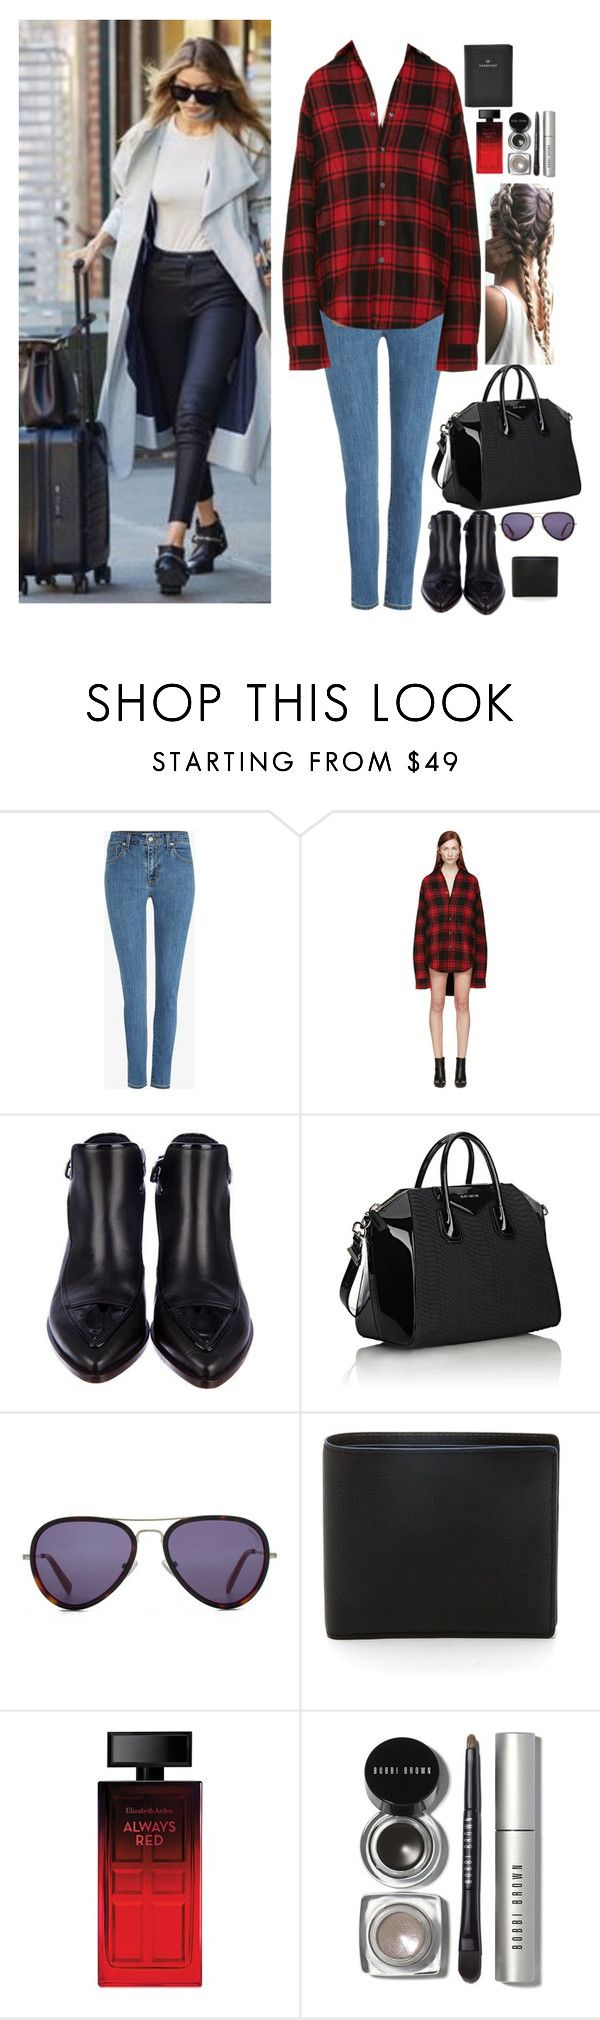 """""""A-arriving to Madrid with Gigi"""" by onedirectionnhllz ❤ liked on Polyvore featuring Levi's, Vetements, Chanel, Givenchy, HOOK LDN, Elizabeth Arden, Bobbi Brown Cosmetics and FOSSIL"""